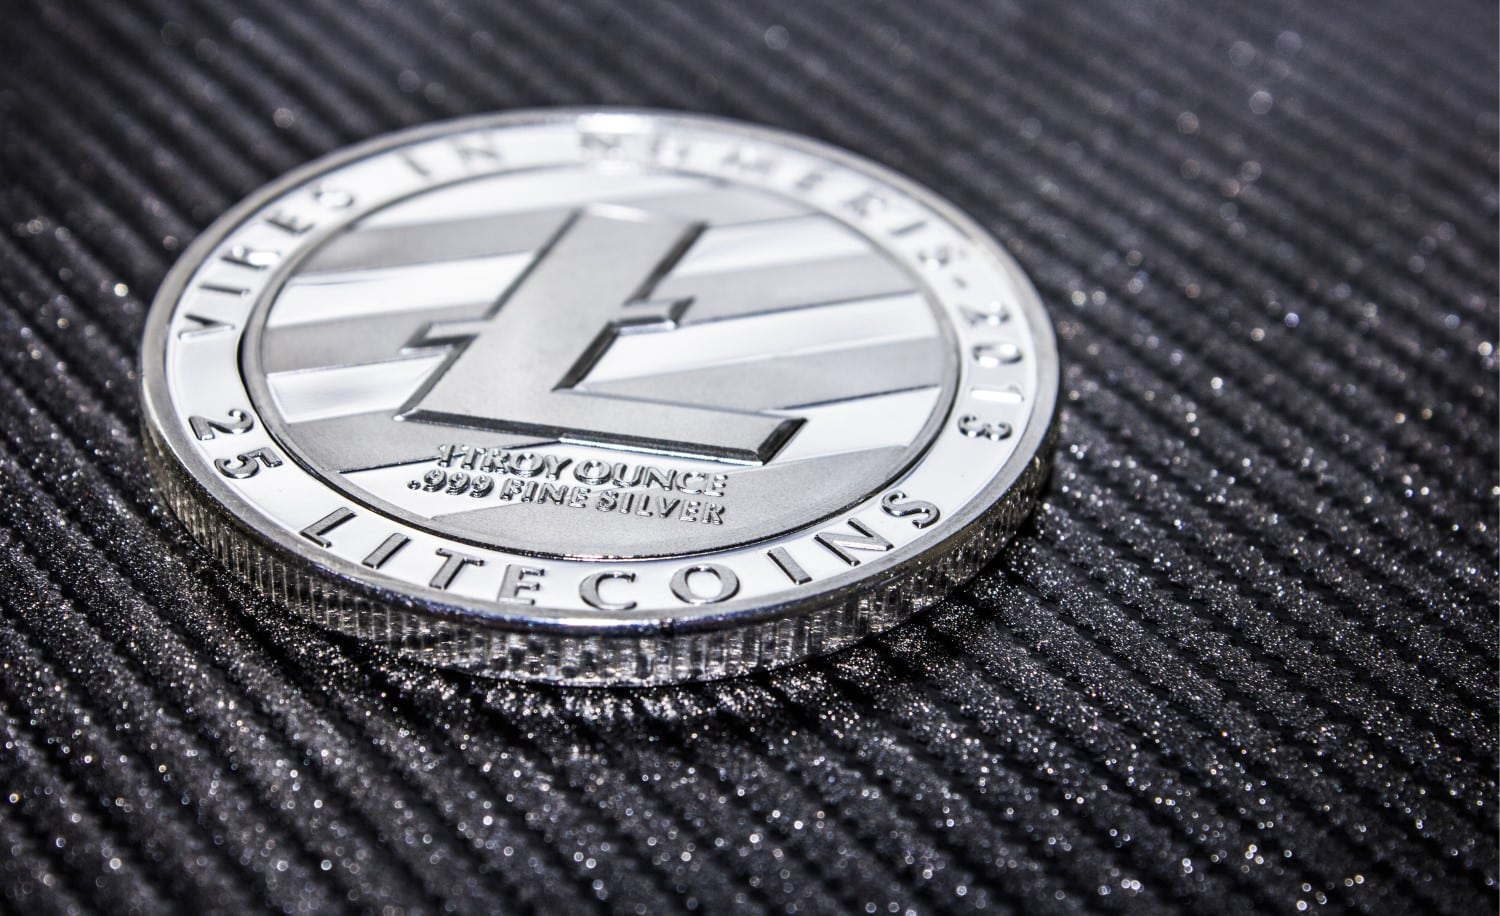 Litecoin LTC on the verge of a Breakout: Battling EOS for the 5th Place